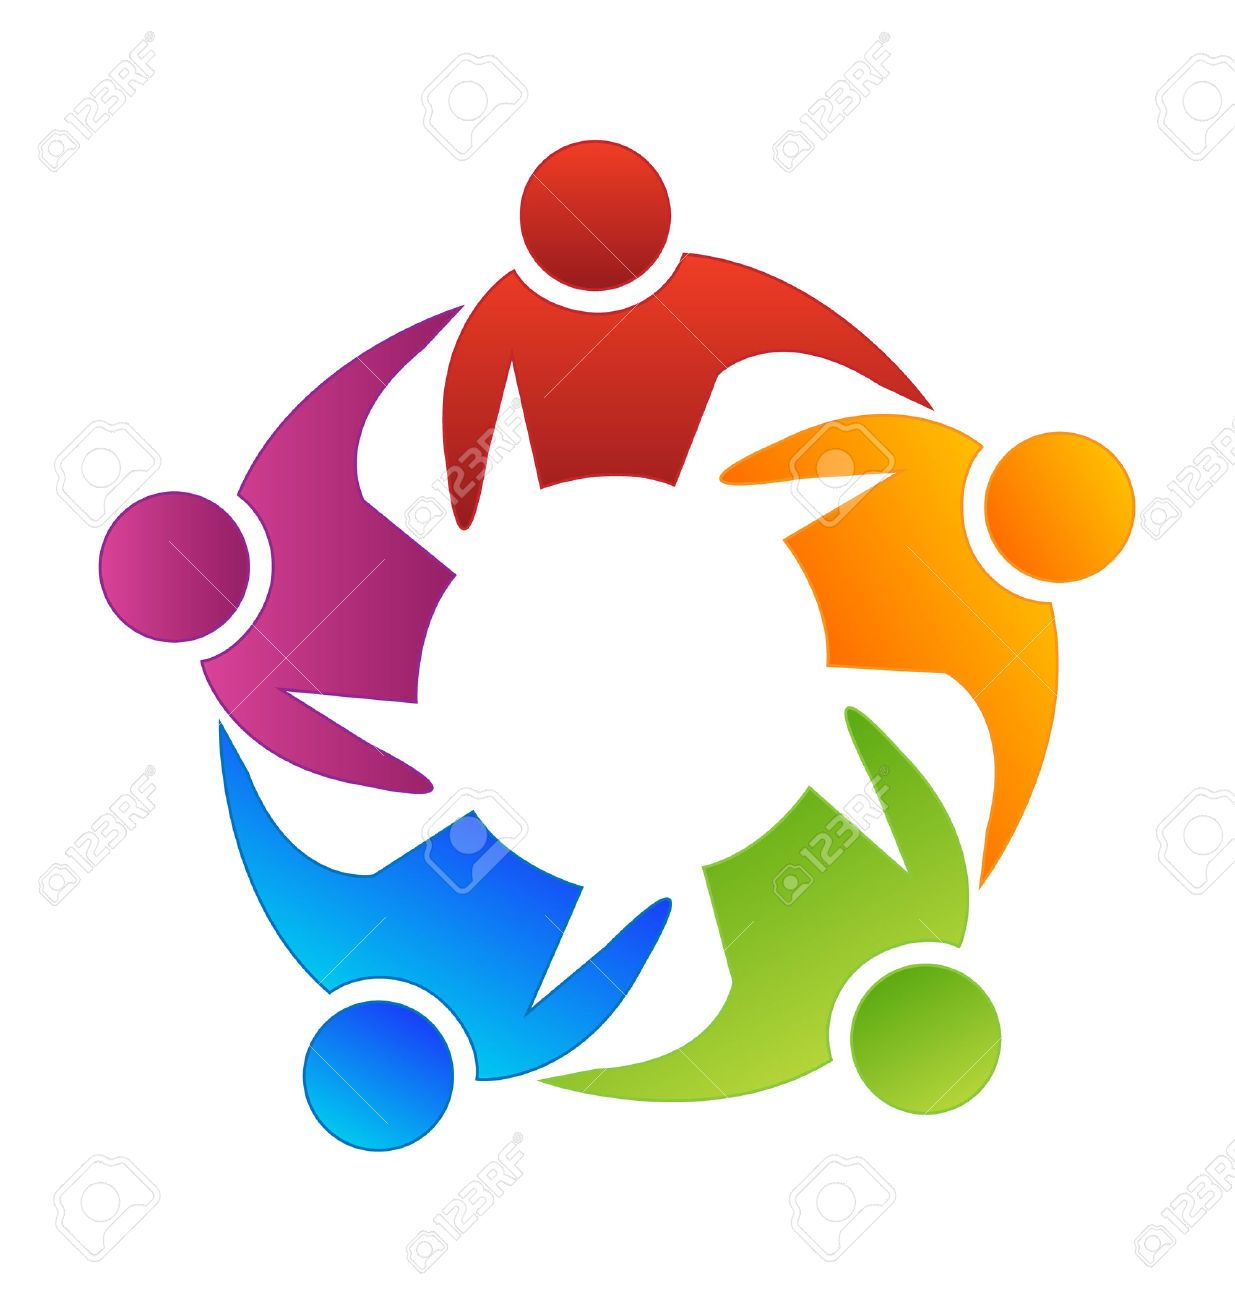 Vector icon people logo. Teamwork clipart diversity